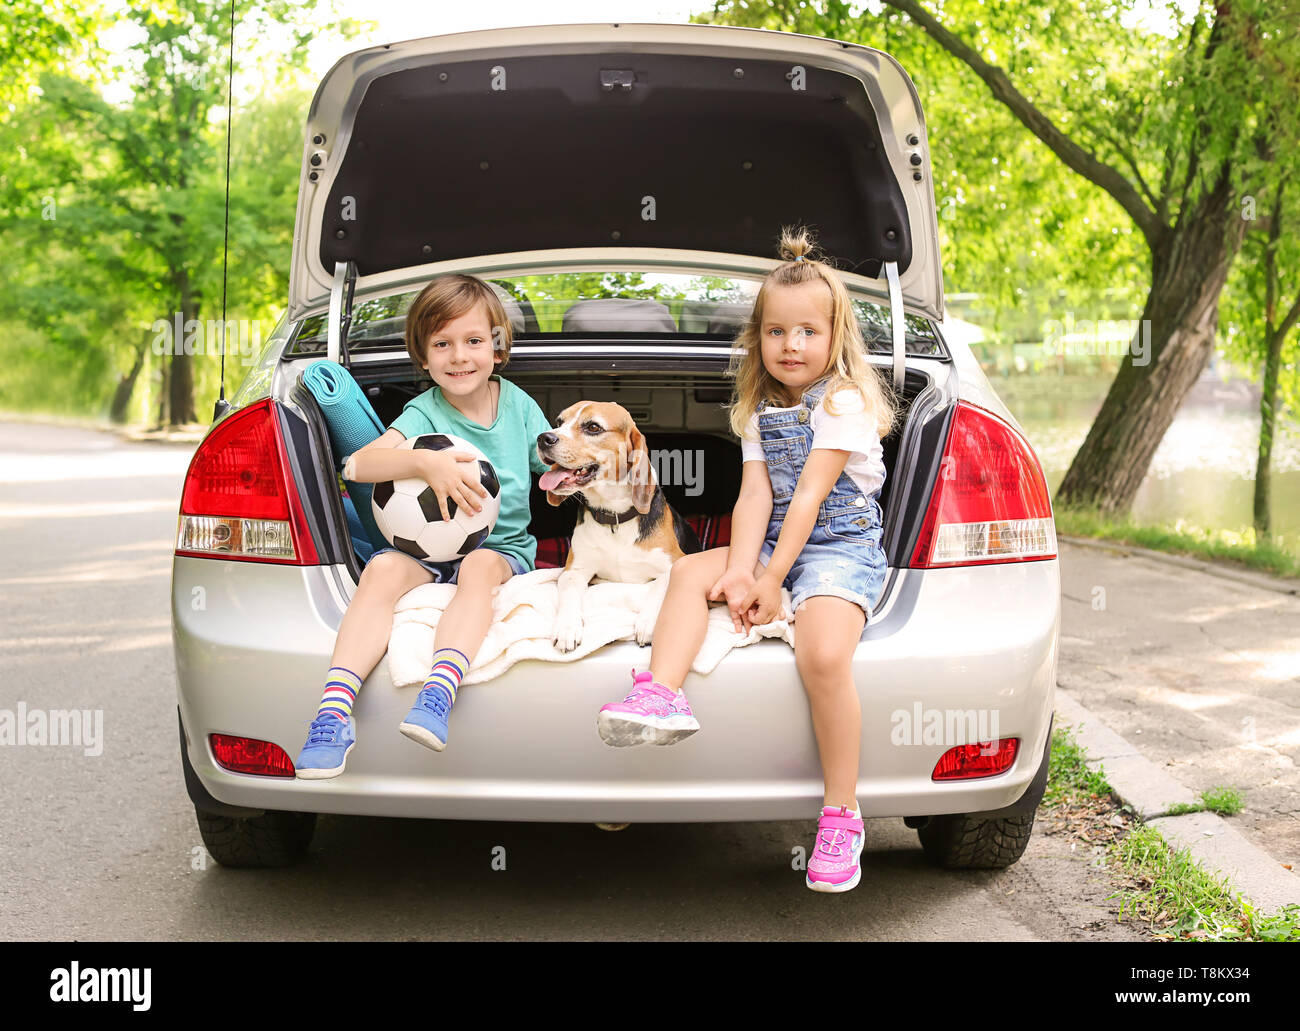 Cute children with dog sitting in car trunk - Stock Image